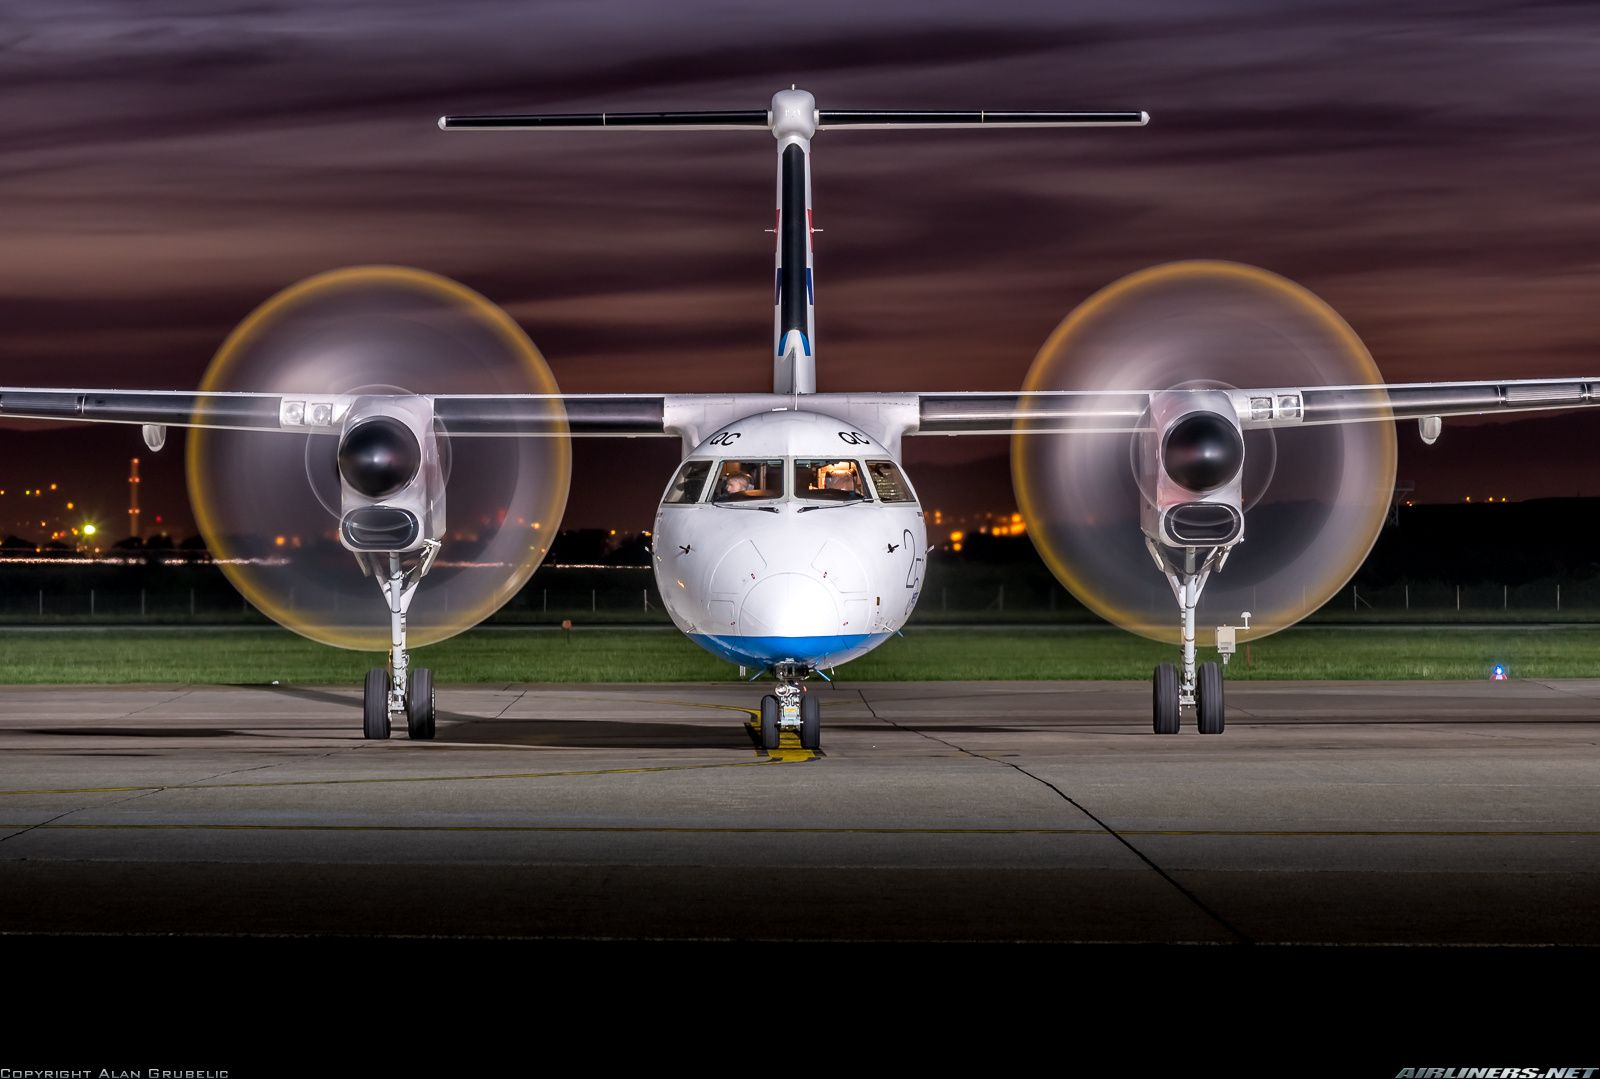 Bombardier Dhc 8 402 Q400 Croatia Airlines Aviation Photo 2639568 Airliners Net Croatia Airlines Dhc Aircraft Pictures